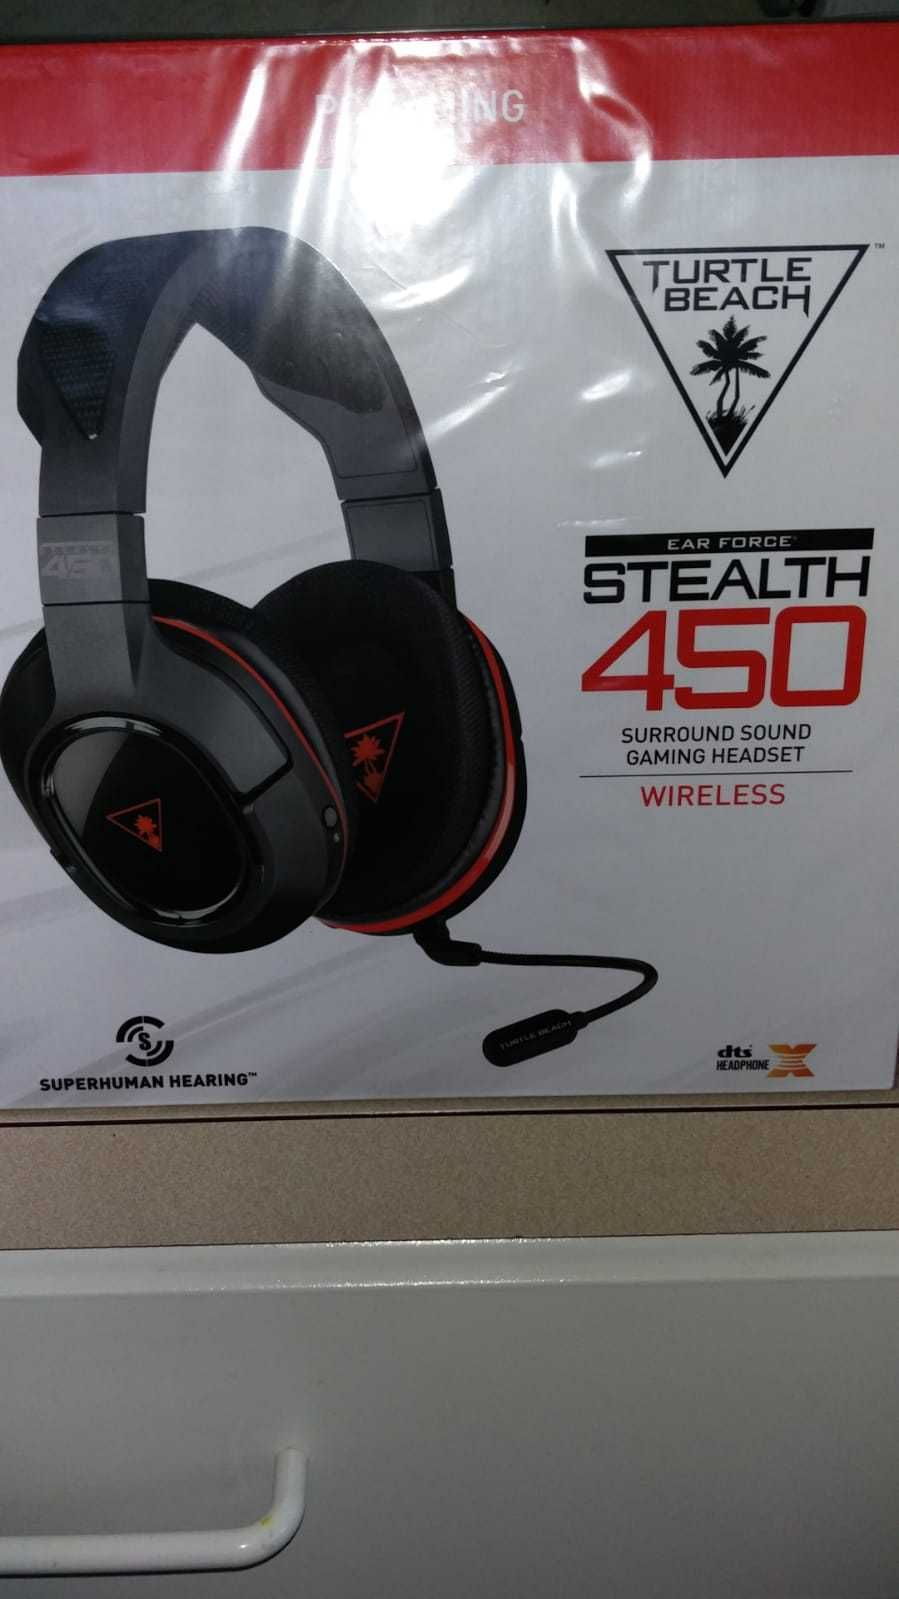 5c2fb737ea3 Headsets 171821: New Sealed Turtle Beach Ear Force Stealth 450 Wireless  Gaming Headset Black Red -> BUY IT NOW ONLY: $68.94 on #eBay #headsets  #sealed ...